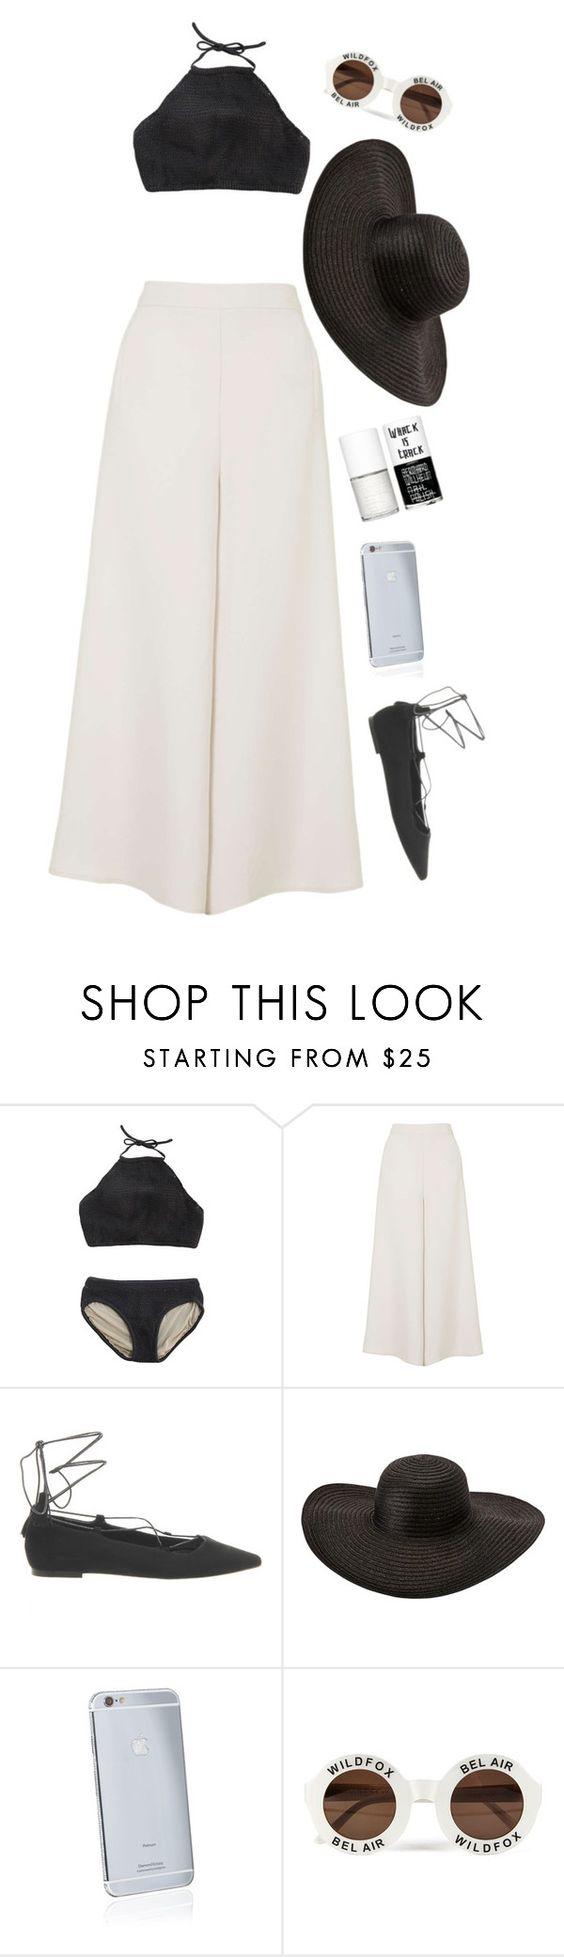 """""""Vacation"""" by comiz ❤ liked on Polyvore featuring Topshop, Office, Goldgenie, Wildfox and Uslu Airlines"""